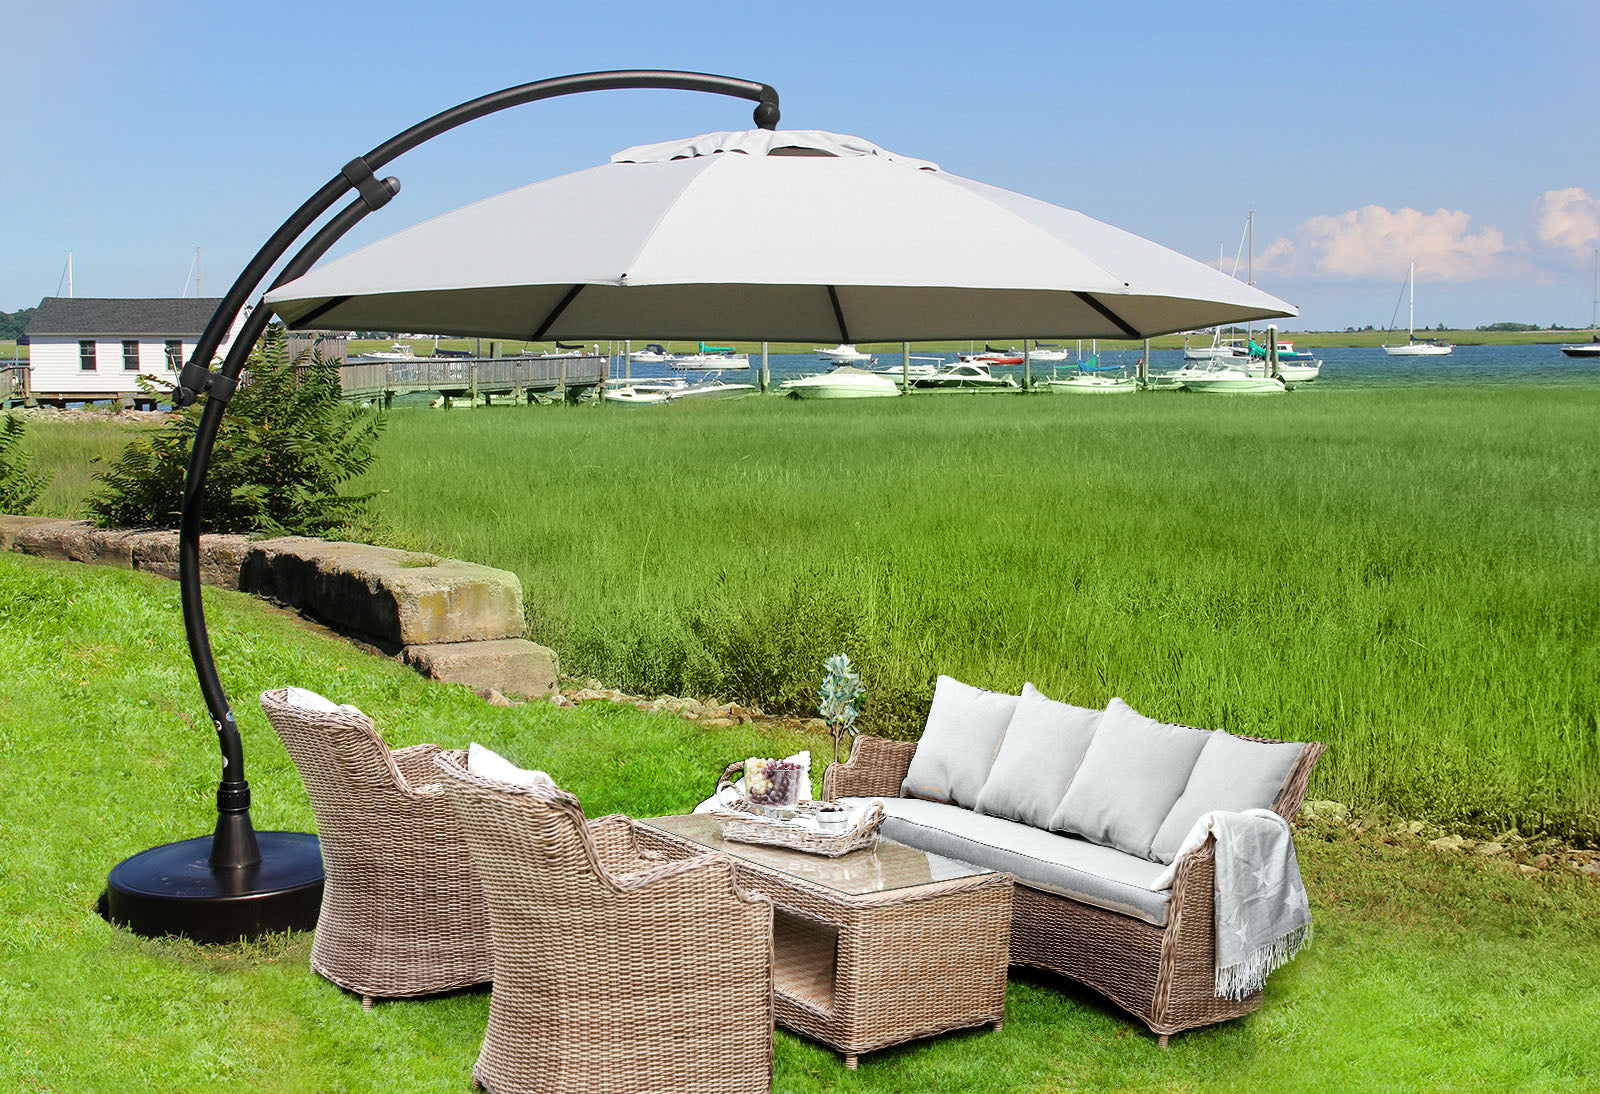 Great ... Sungarden Umbrella 13 Ft, The Original From Germany, Color Heather   La  Place USA ...